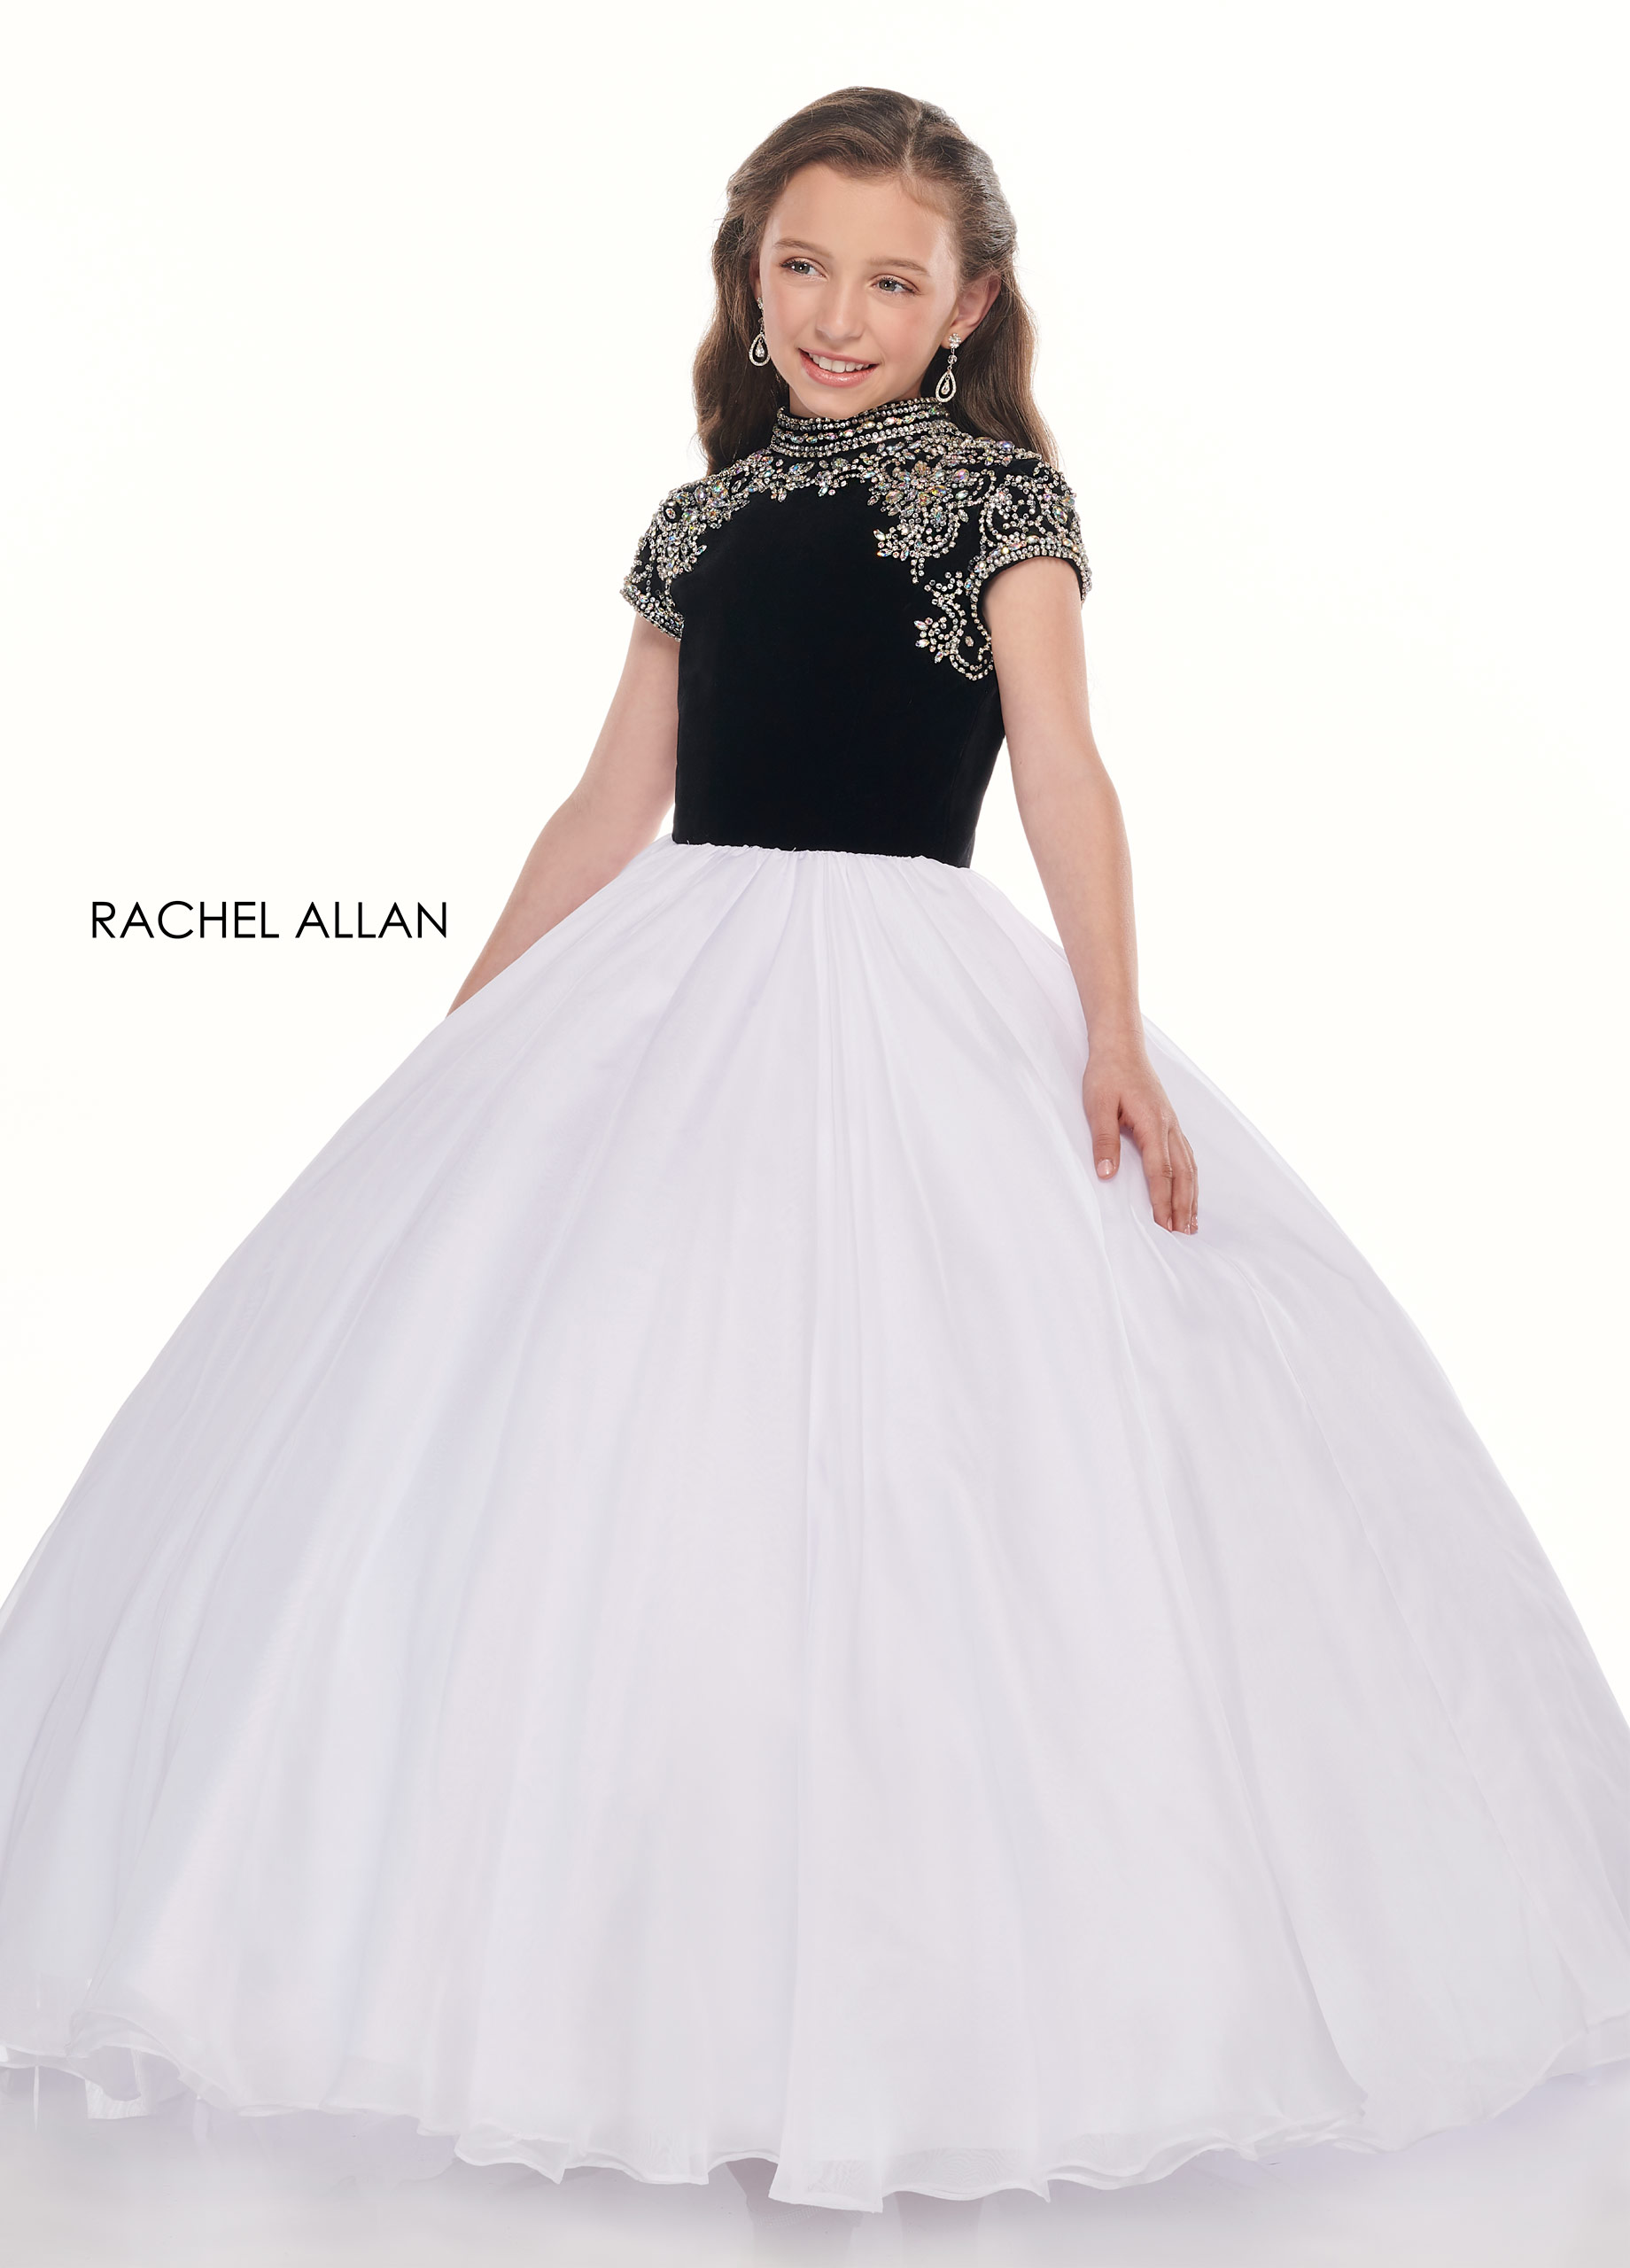 High Neckline Ball Gowns BEST SELLERS in Black Color